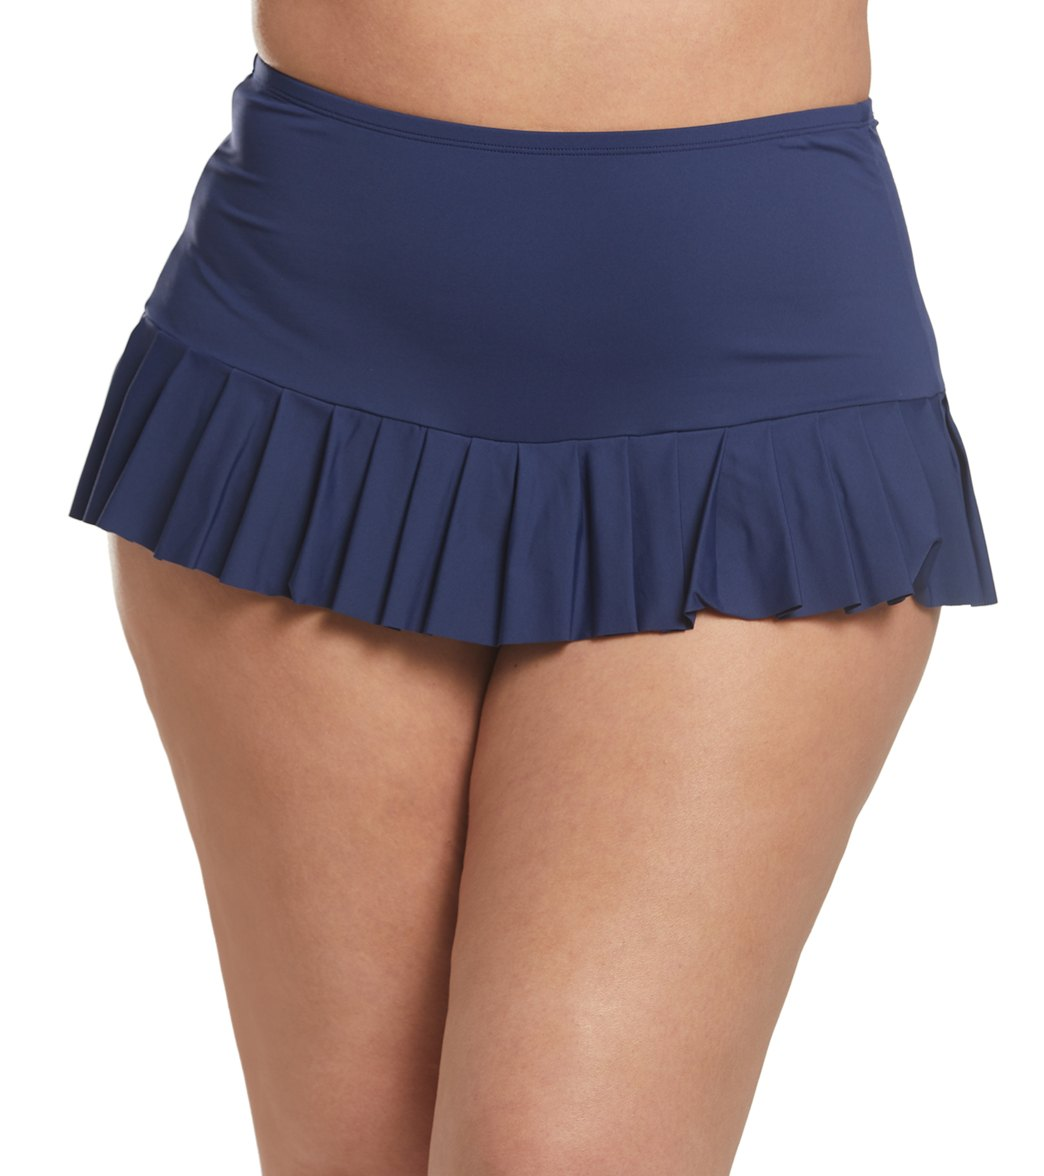 5fc6a8aa6 Beach House Plus Size Paloma Beach Sophie Pleated Swim Skirt at  SwimOutlet.com - Free Shipping